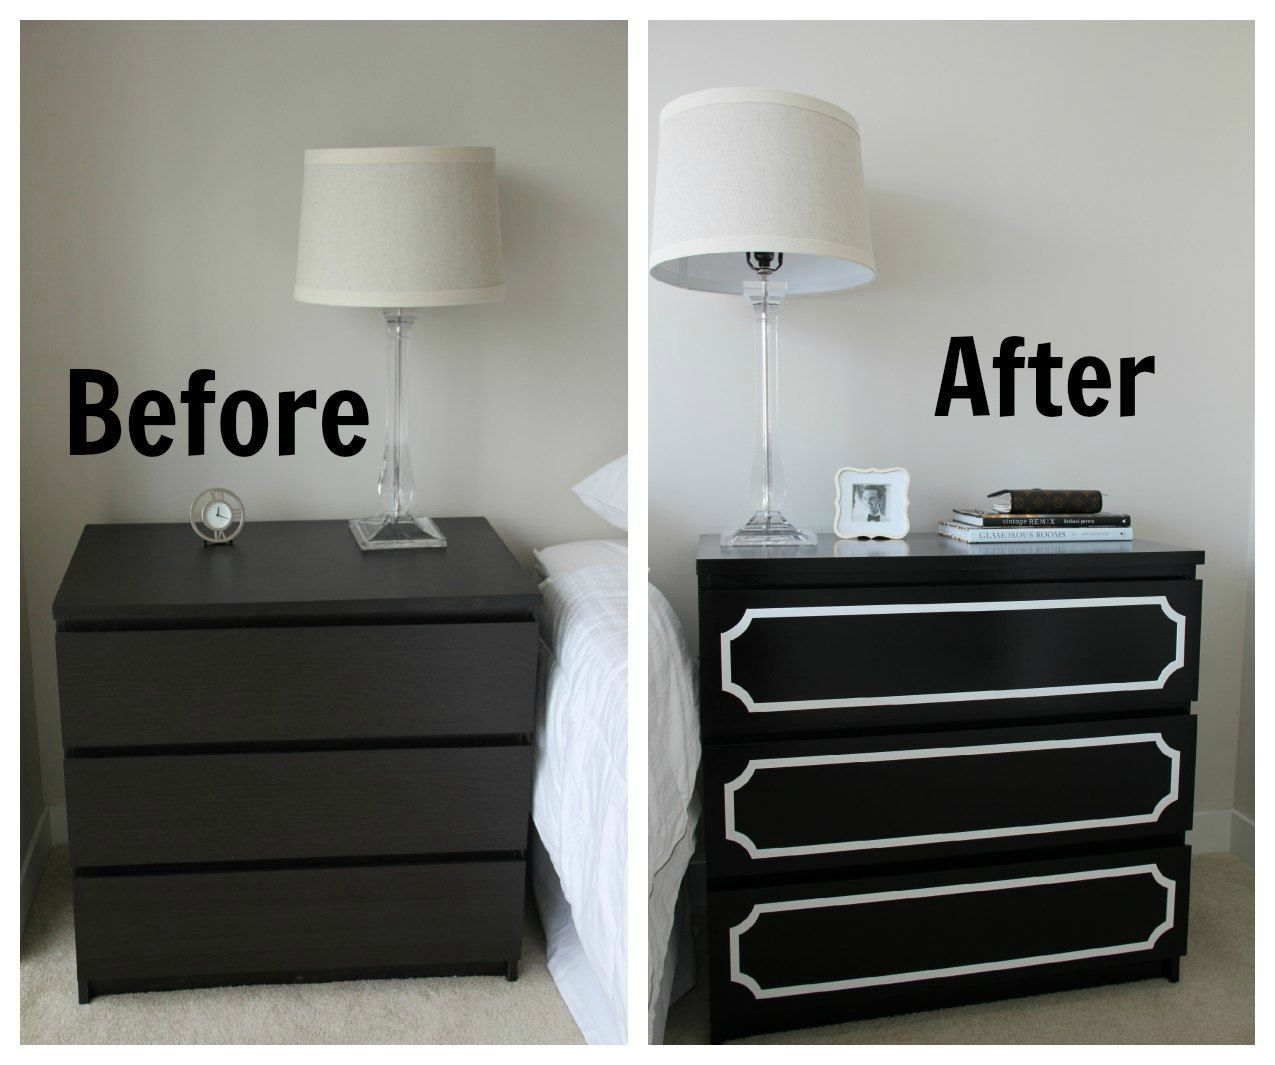 Posh Meets Pavement Ikea Hack Malm Dresser O Verlays Genius Way To Vamp Up Pieces Makes Them Look Very Expensive Cannot Wait Do This In The